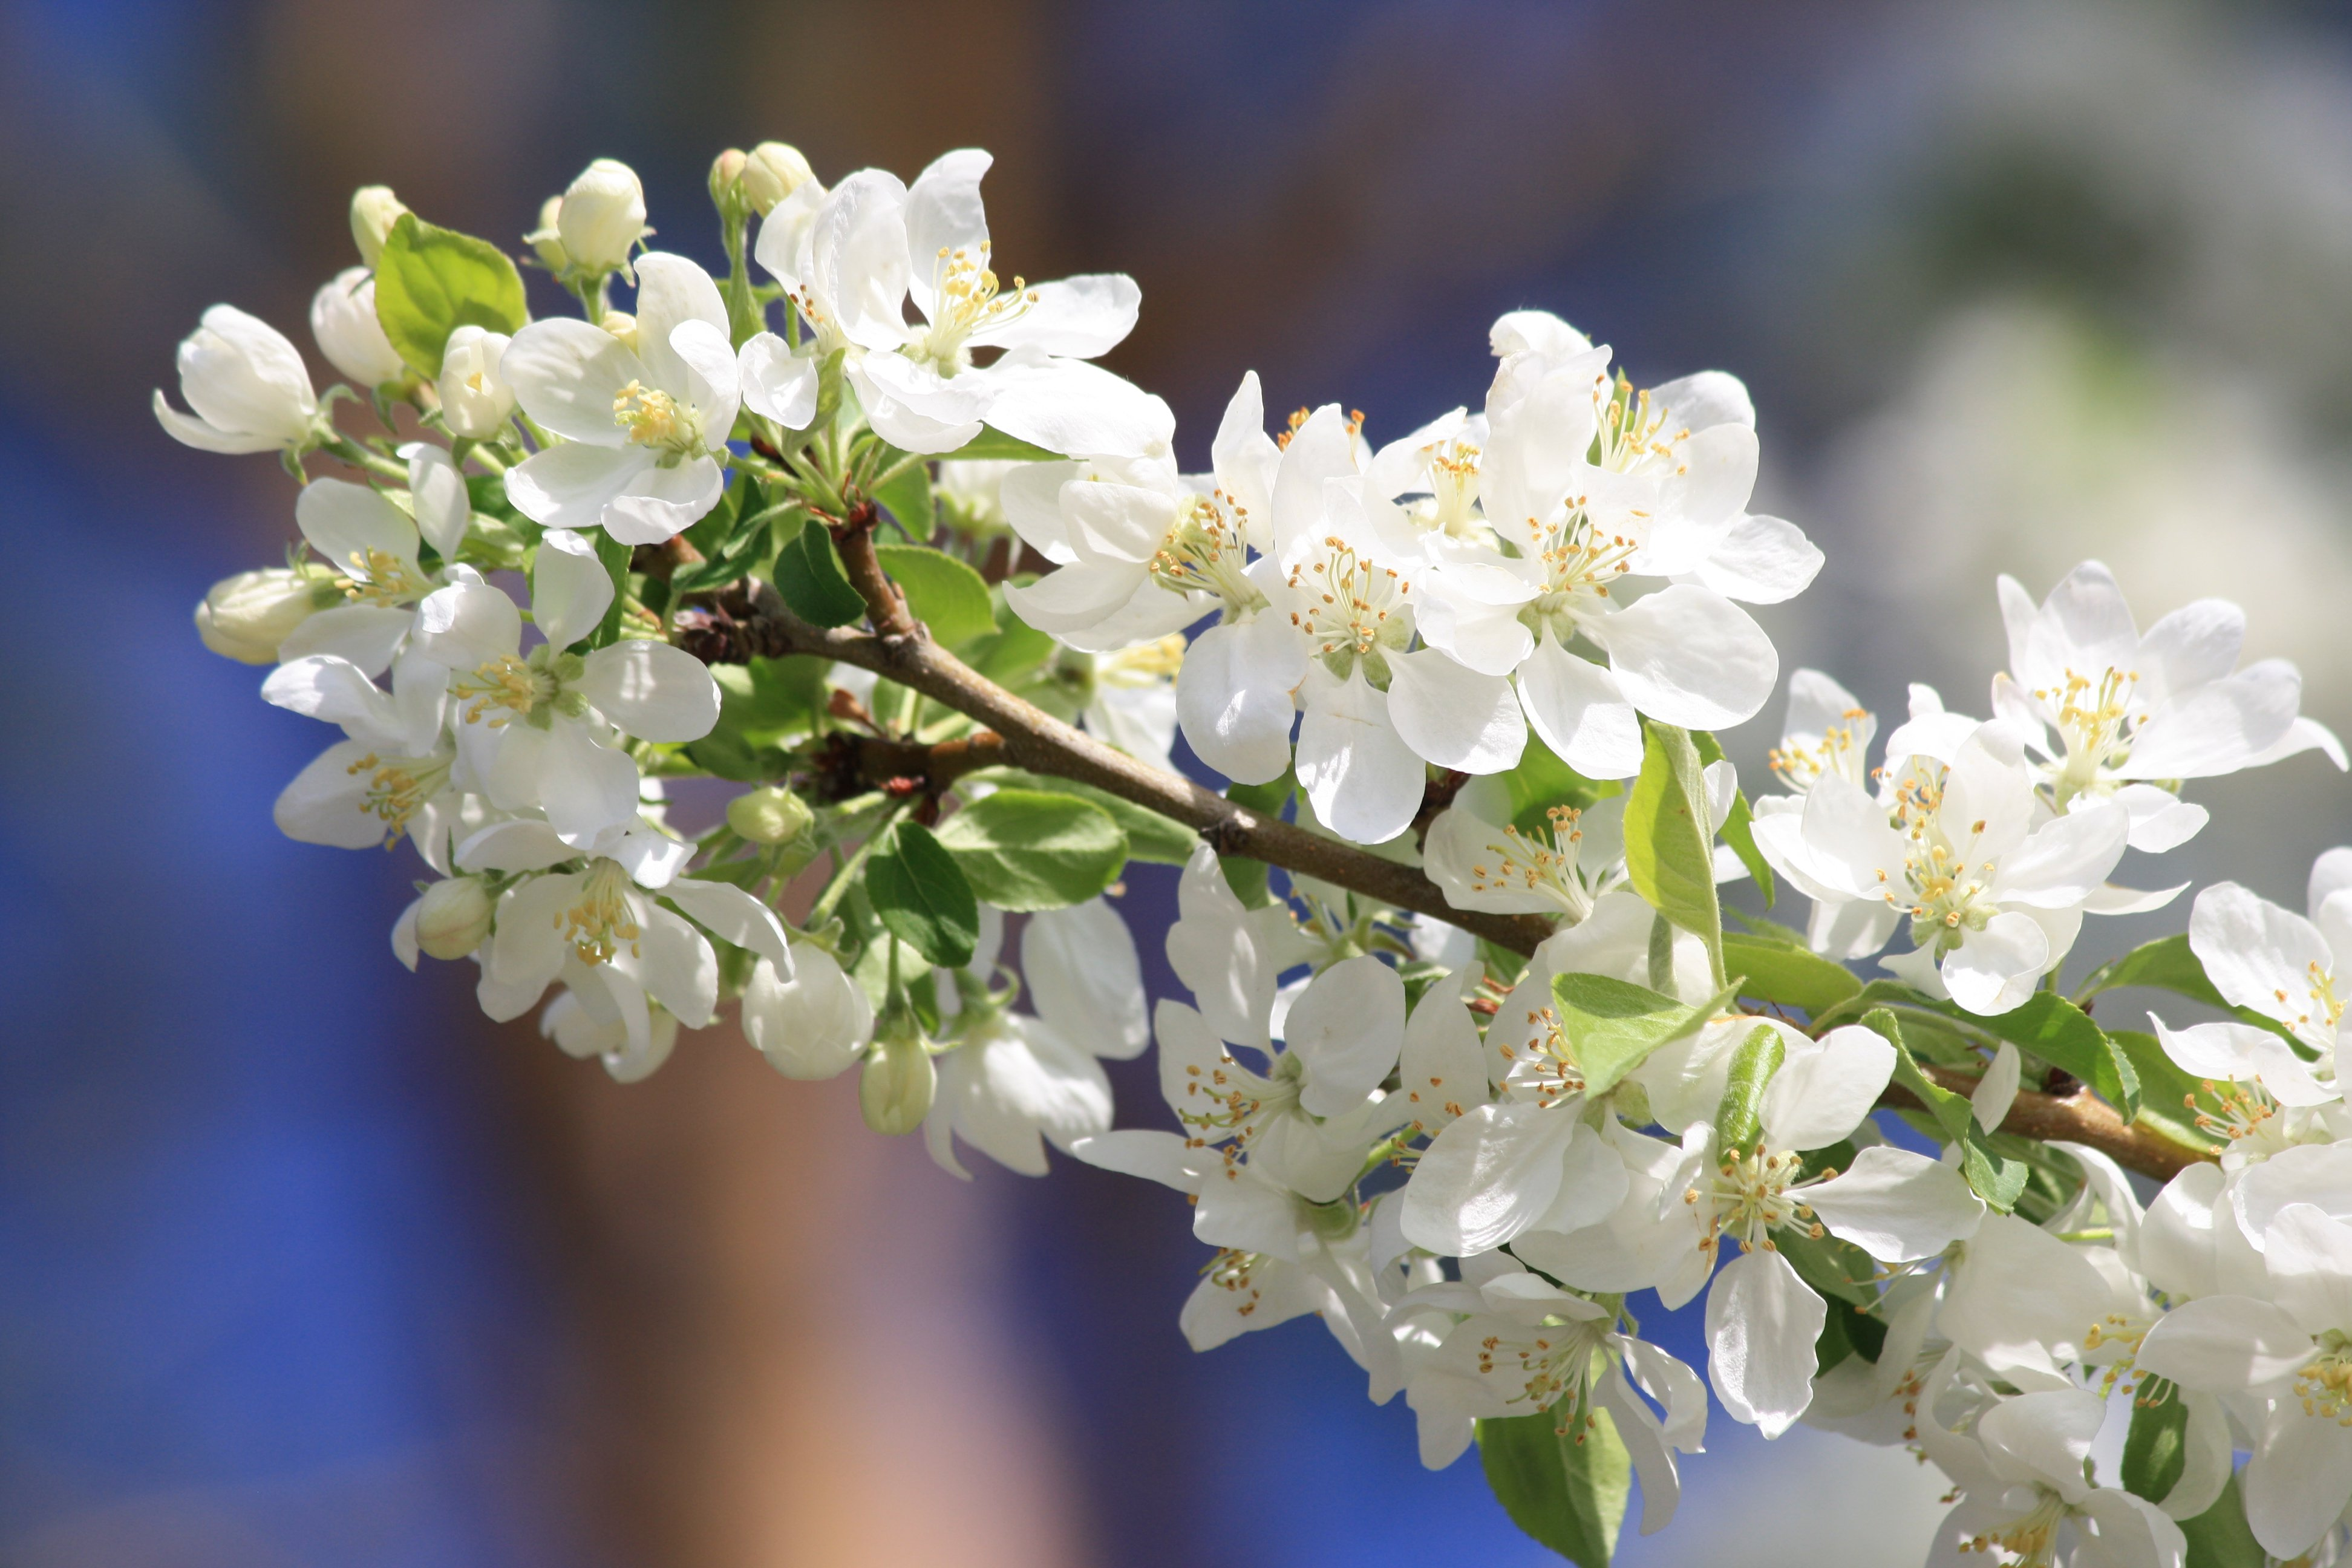 White crabapple blossoms picture free photograph photos public white crabapple blossoms mightylinksfo